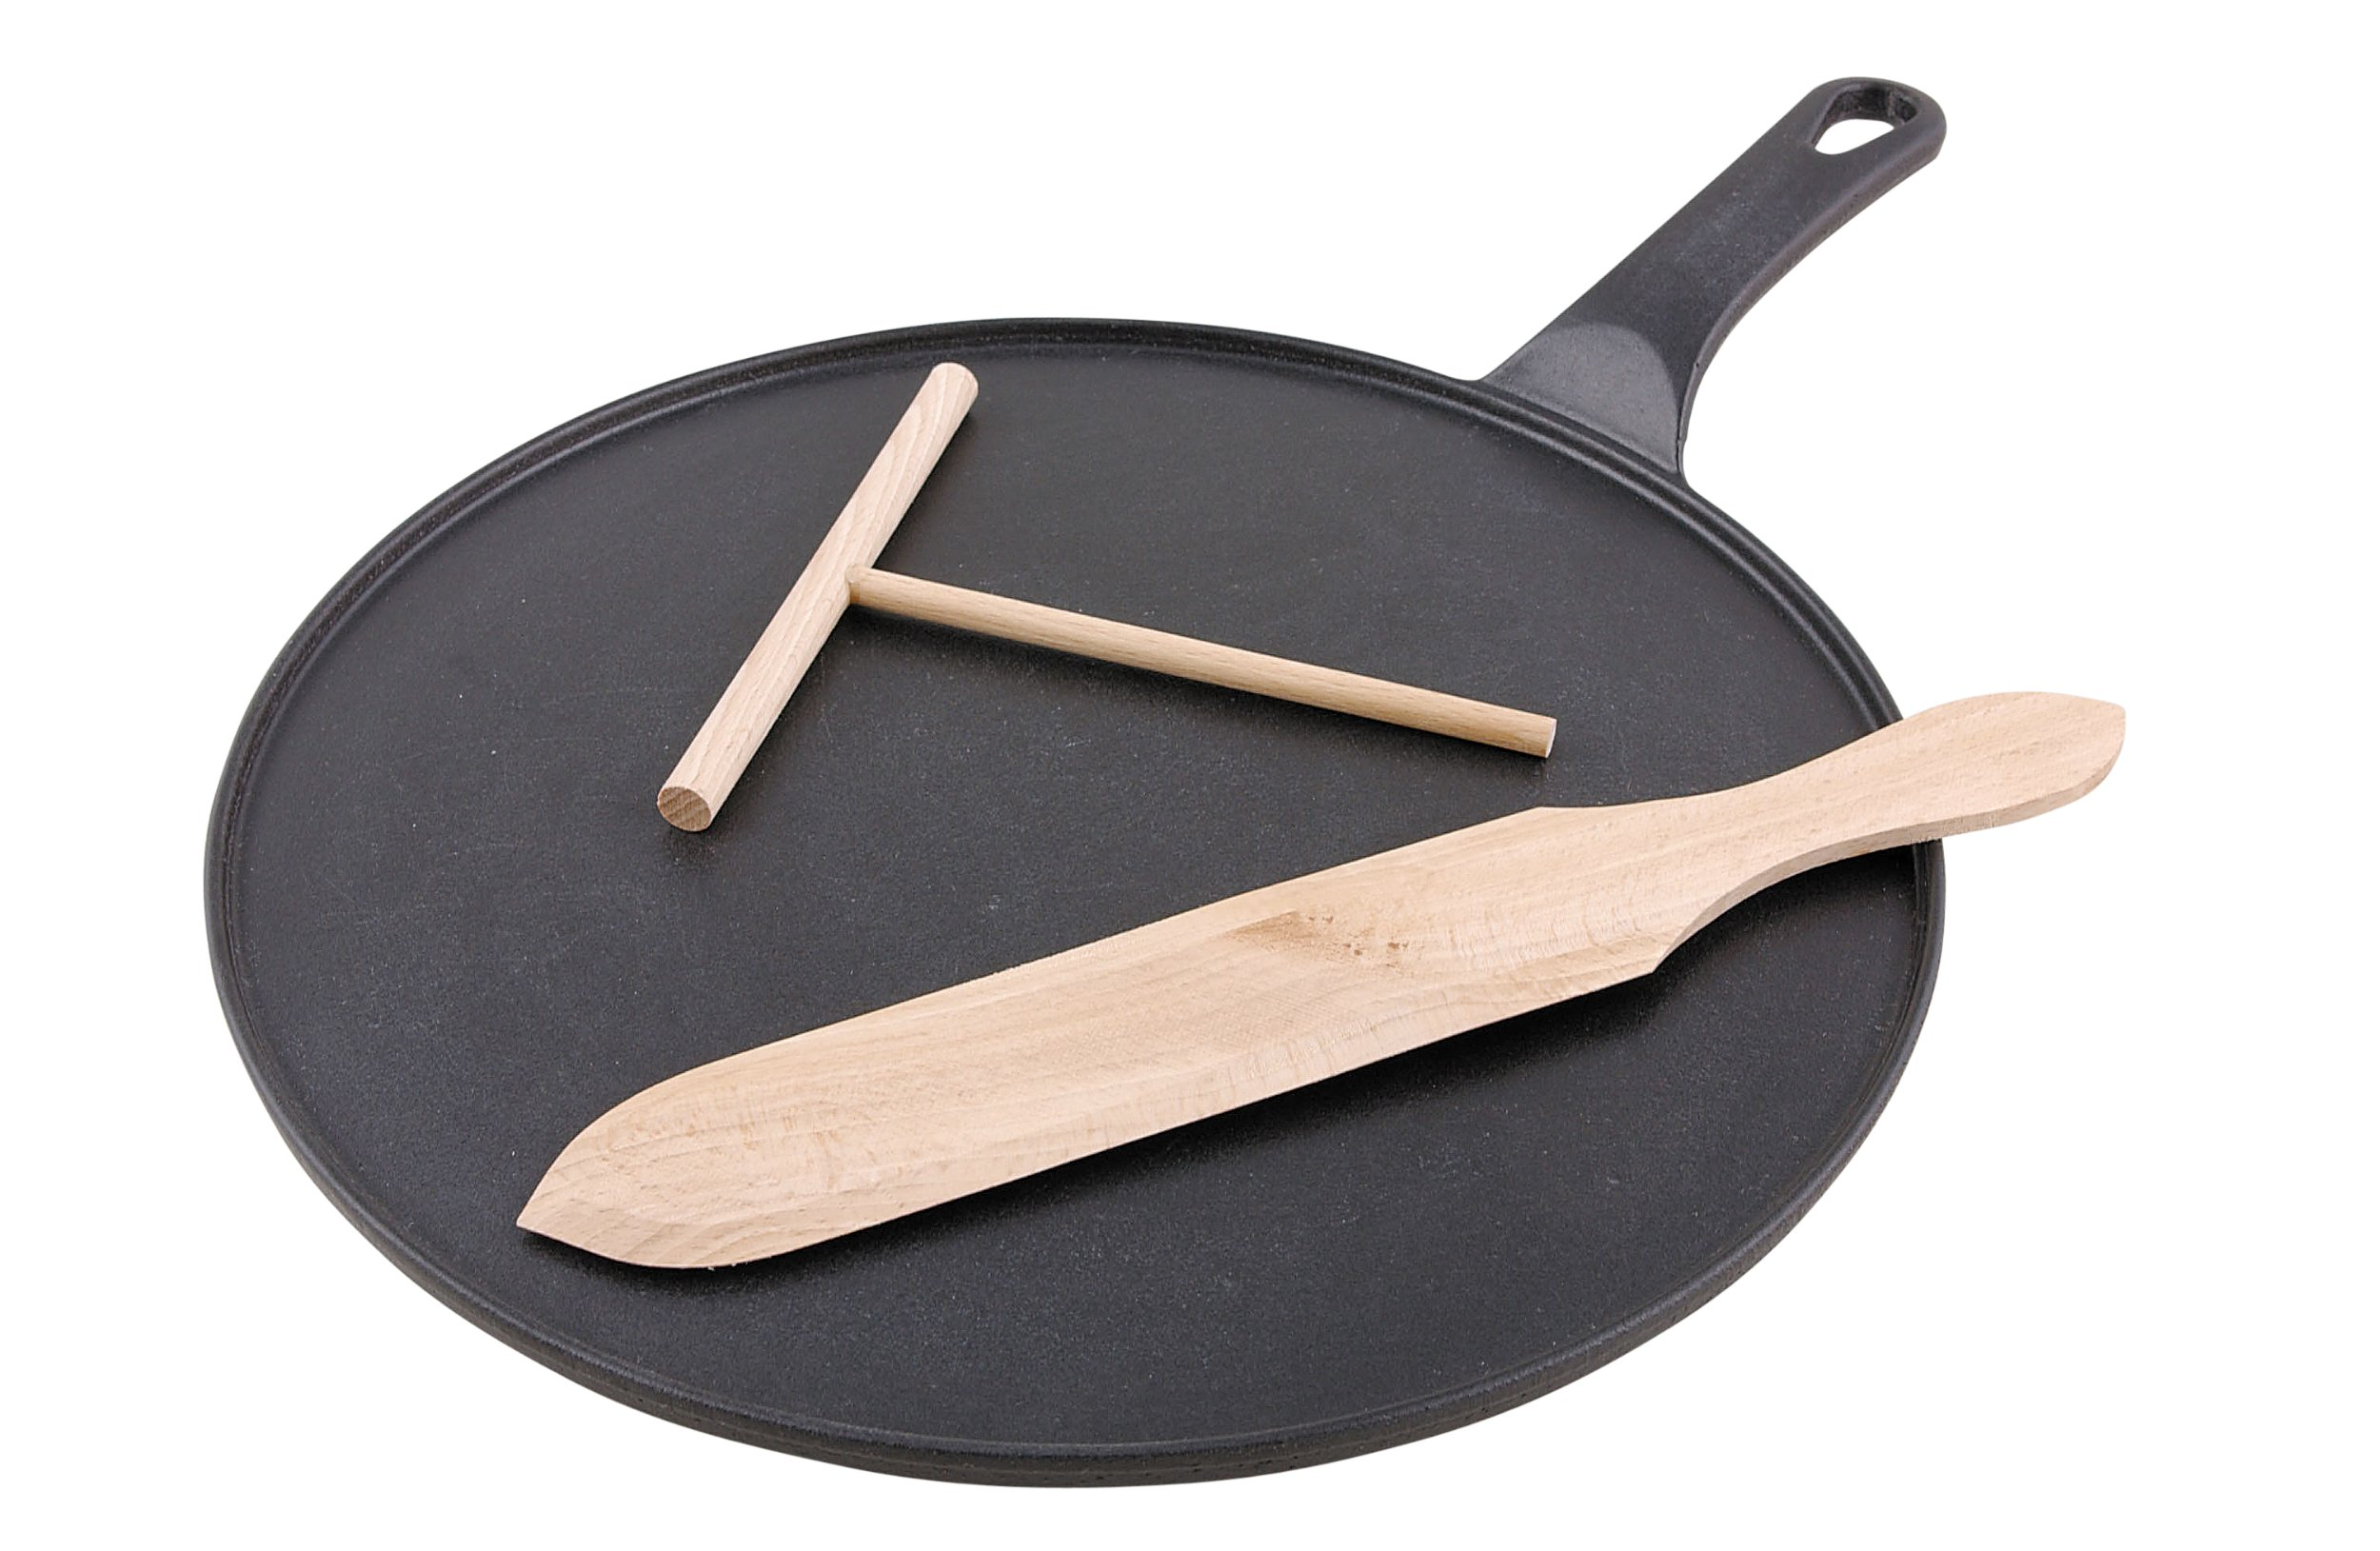 Chasseur Cast Iron Crepe Pan Set, Matt Black, 30 cm